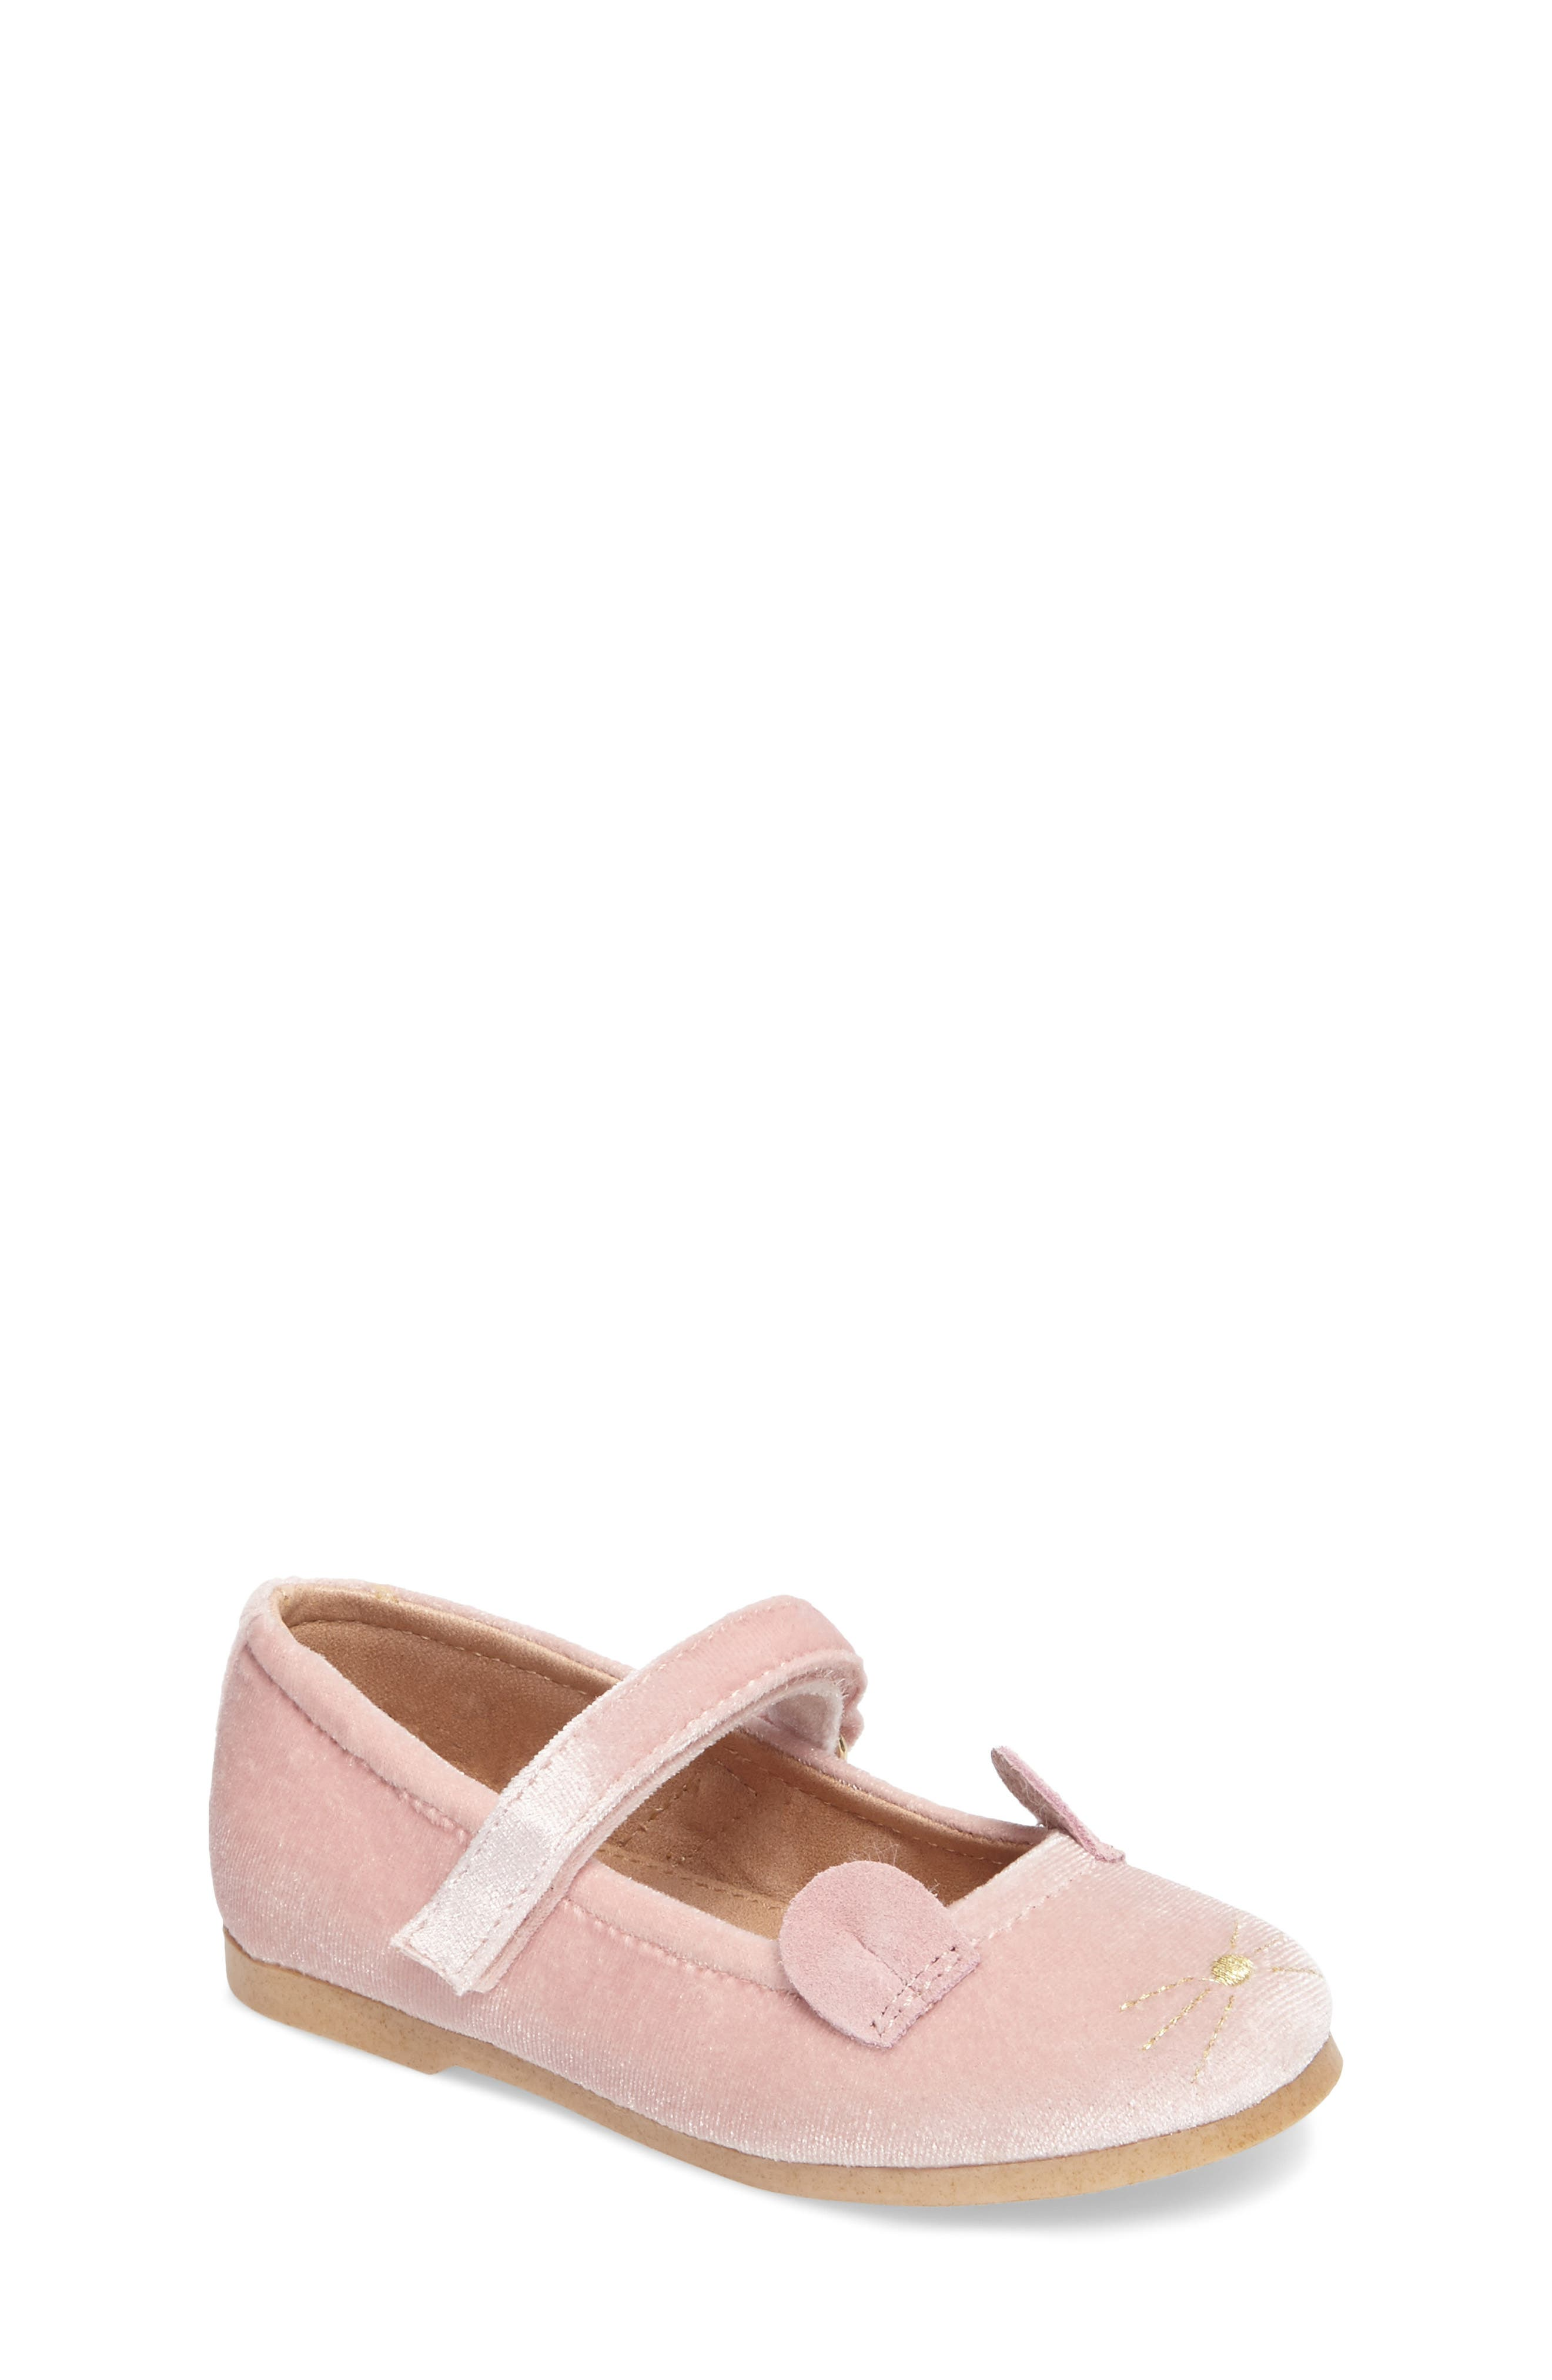 Tucker + Tate Mouse Mary Jane Flat (Walker & Toddler)